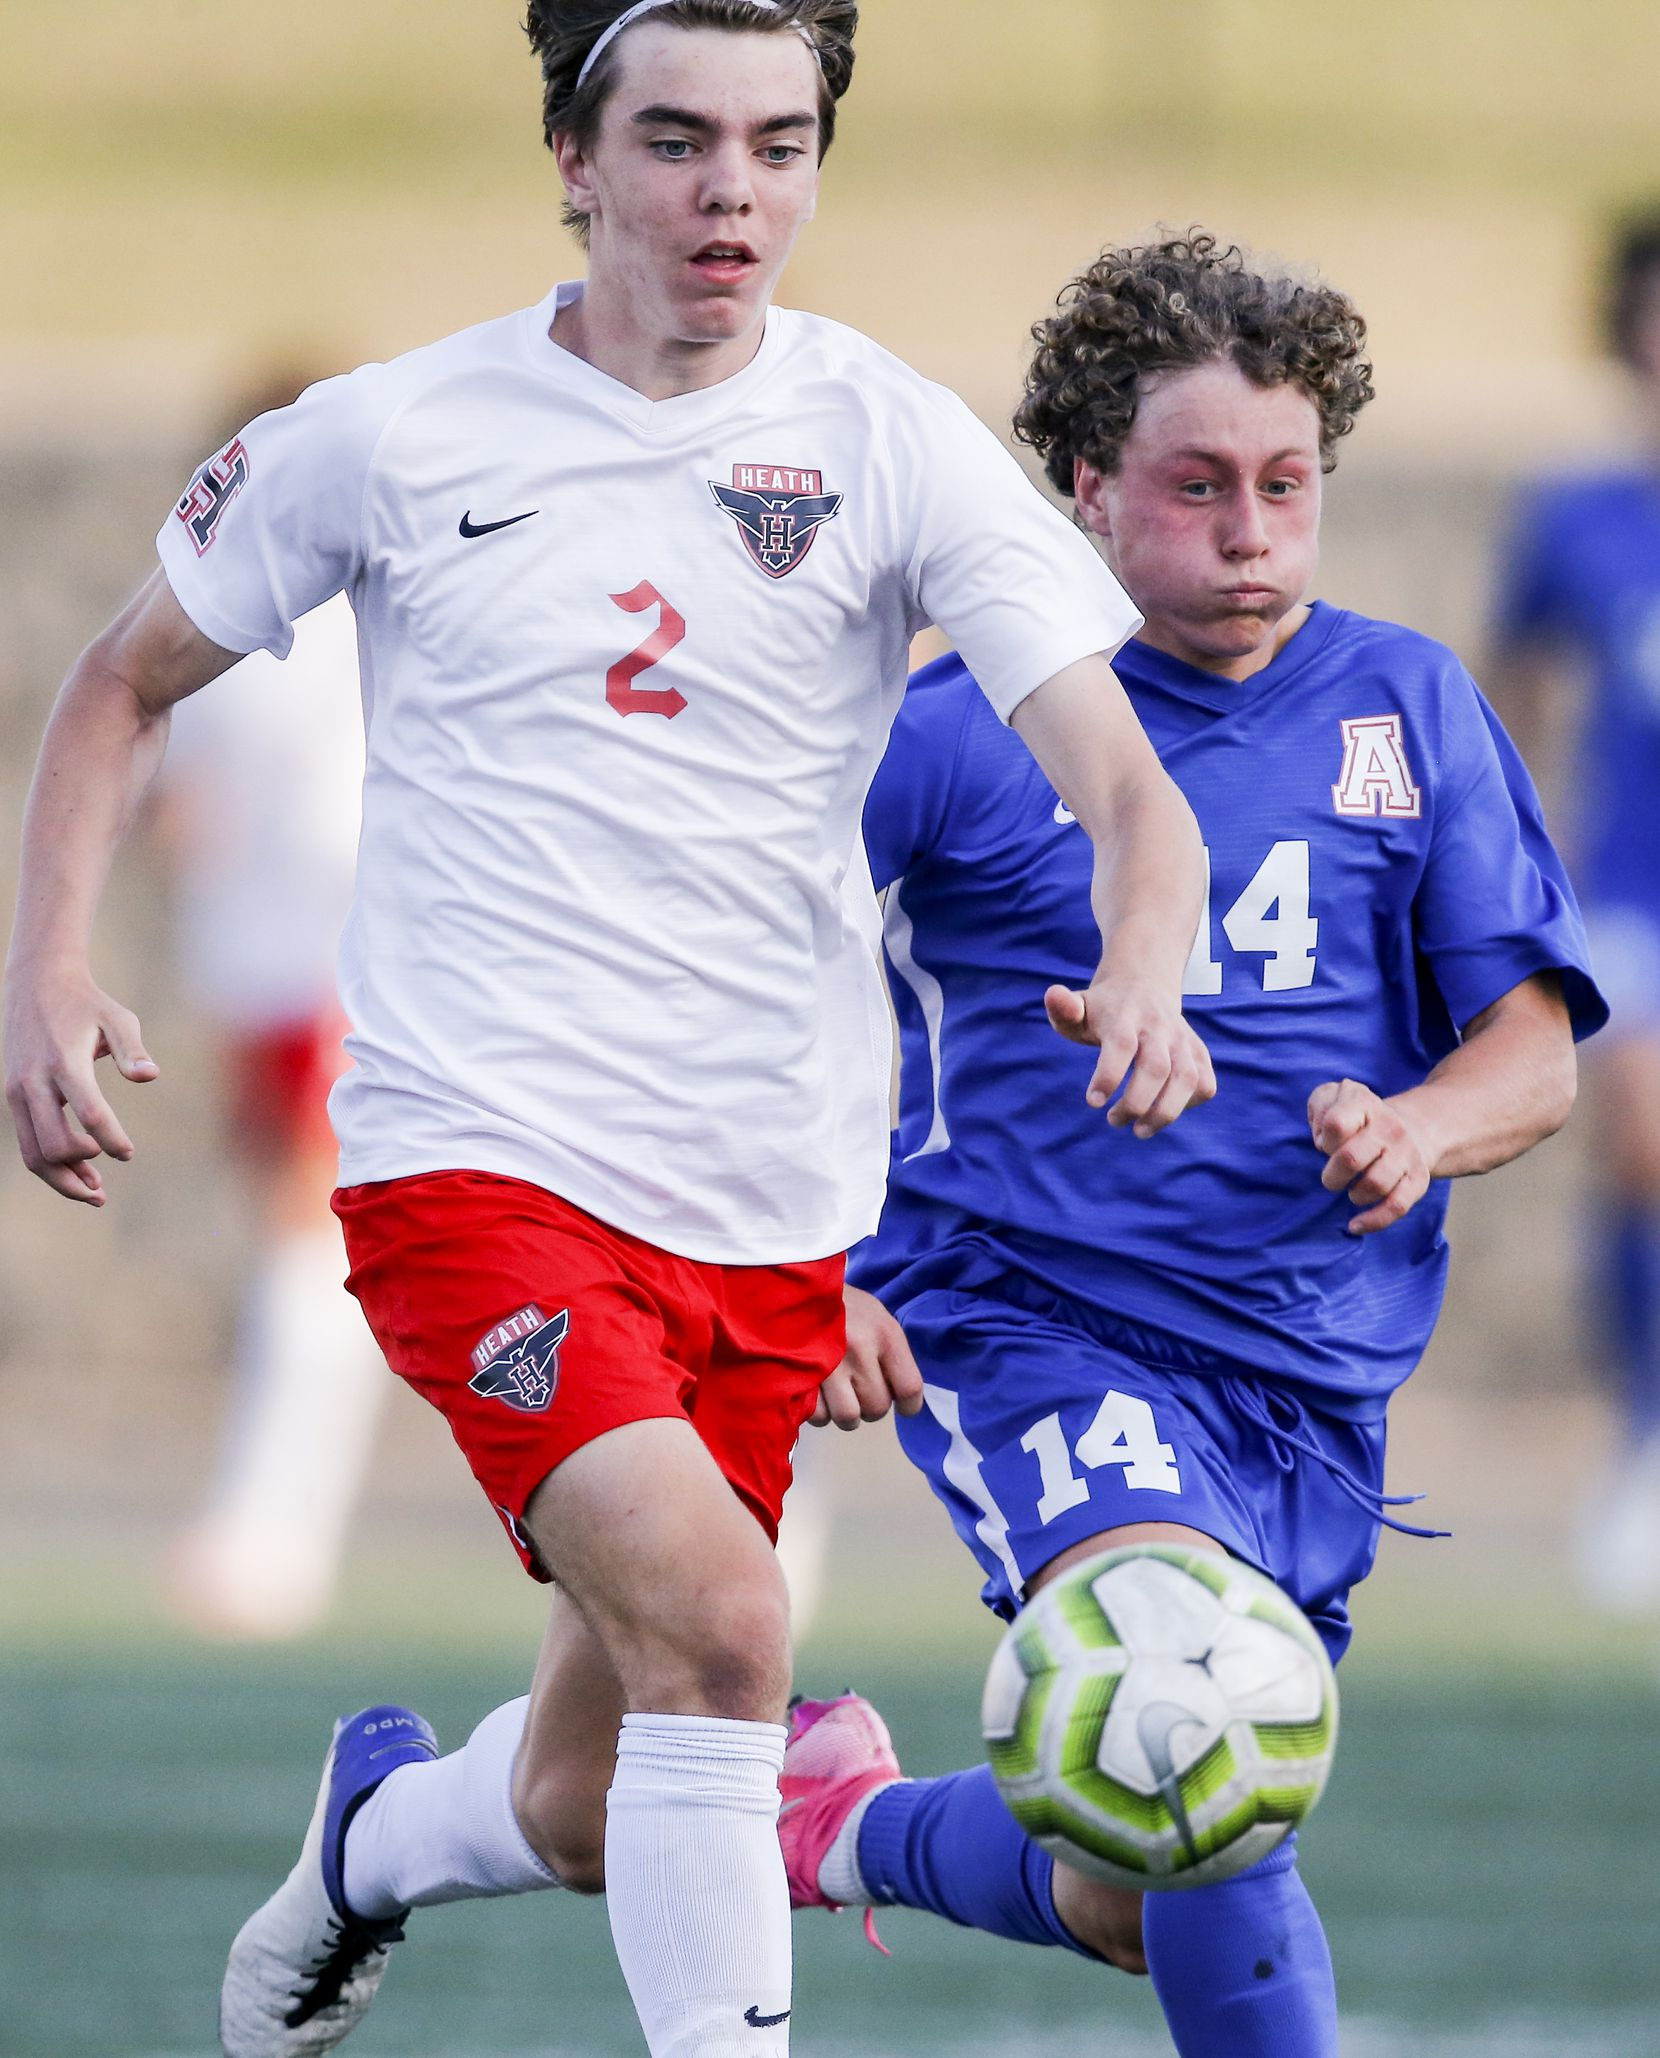 Rockwall-Heath sophomore defender Cole Dougherty (2) and Allen junior forward Matthew Sanchez (14) battle for the ball during the first half of a boys soccer Class 6A state semifinal at Mesquite Memorial Stadium in Mesquite, Tuesday, April 13, 2021. (Brandon Wade/Special Contributor)